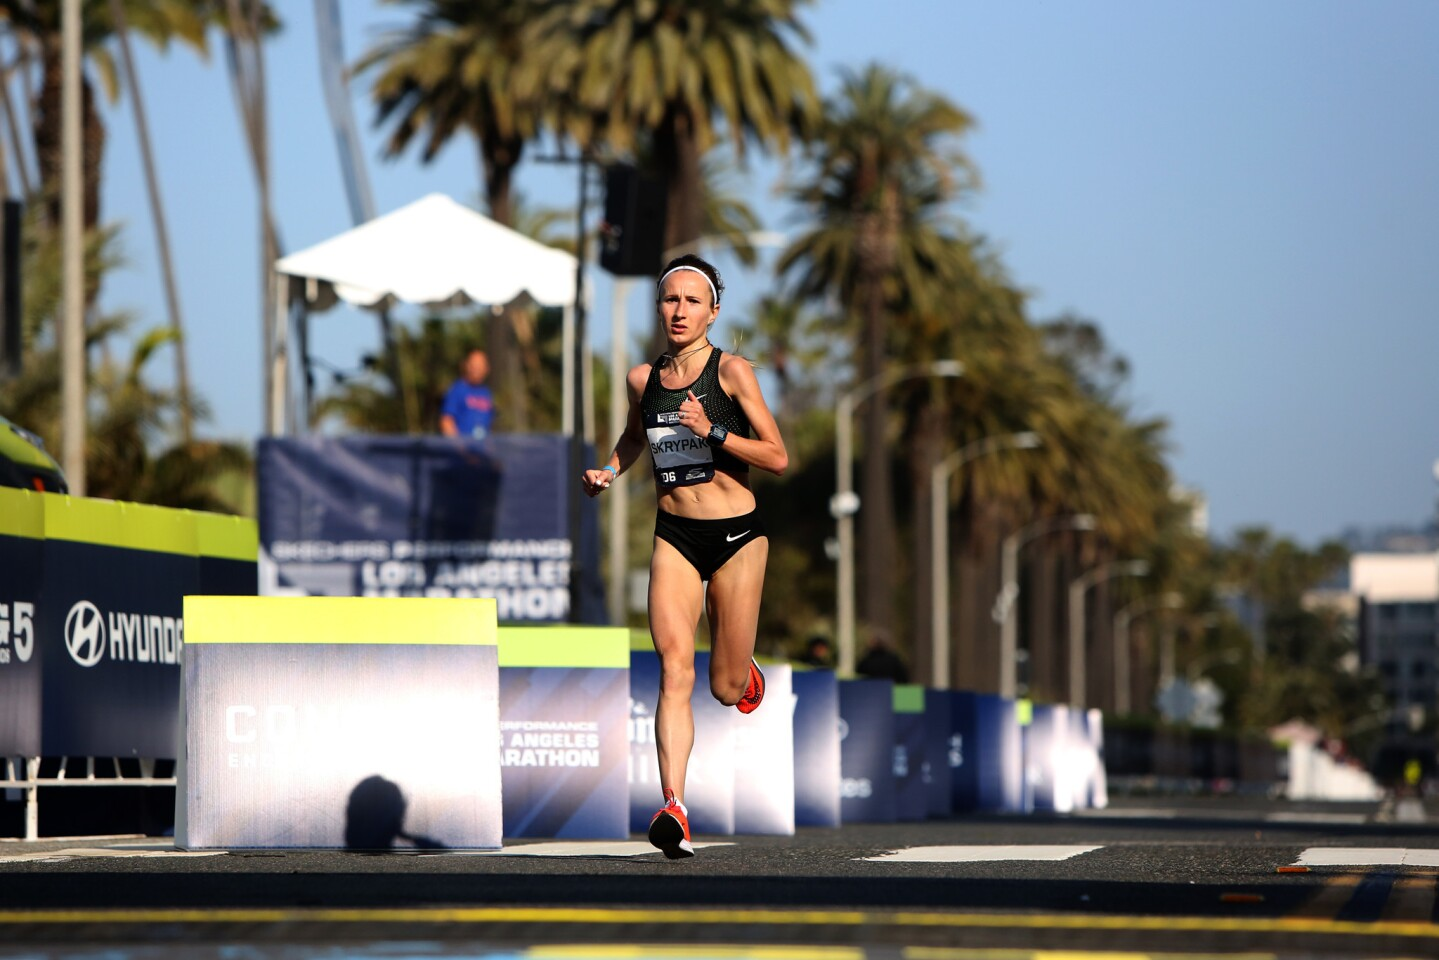 Runner Olha Skrypak finishes in fourth place for female runners during the Los Angeles Marathon on March 24.